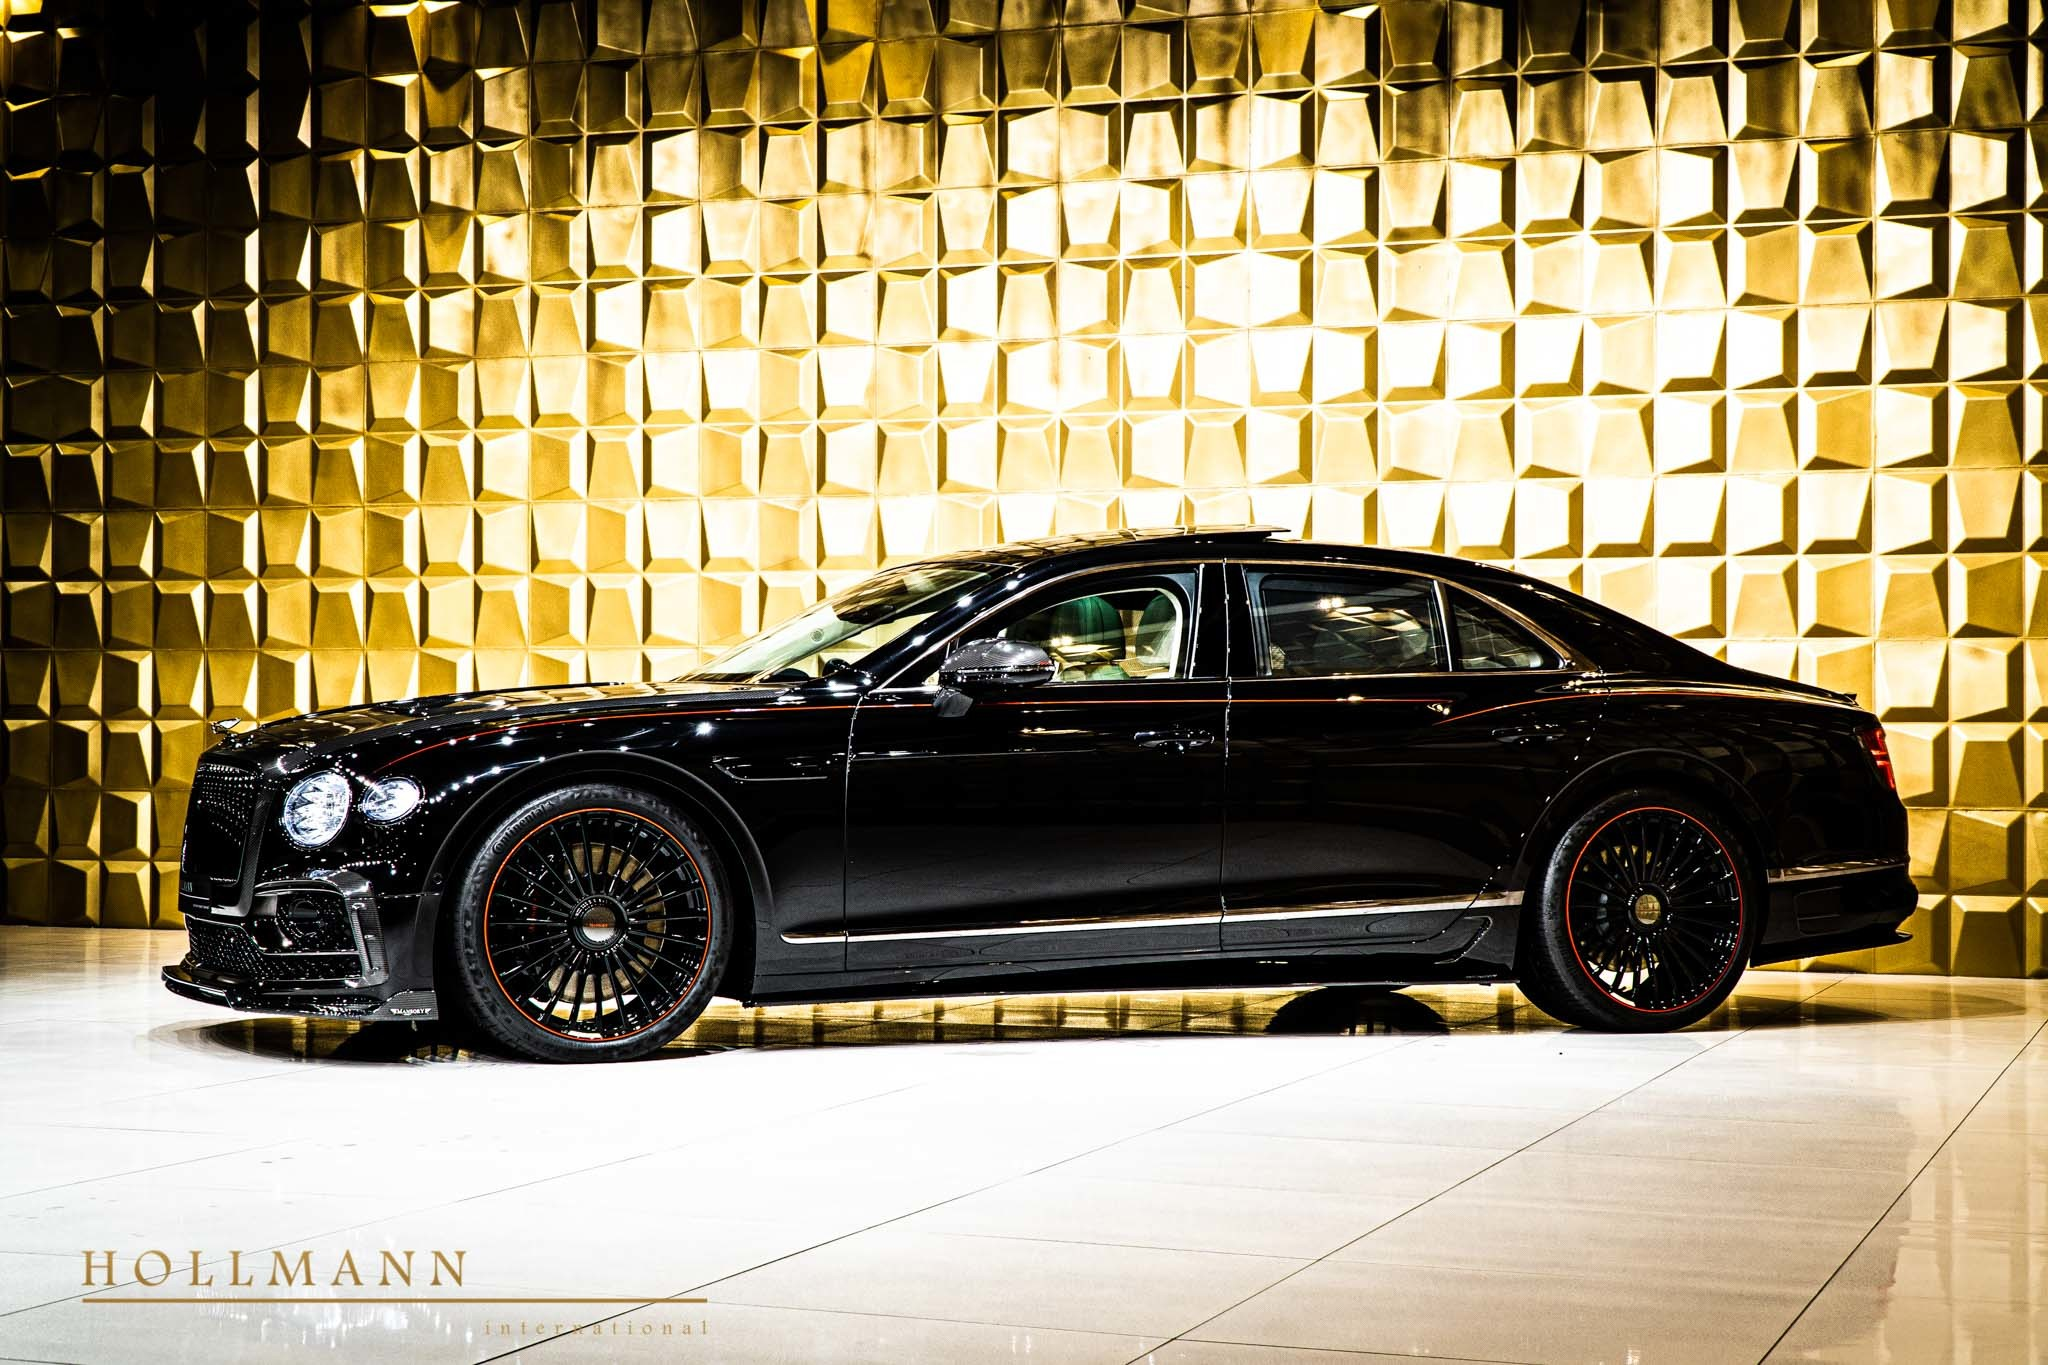 Bentley Flying Spur First Edition By Mansory Hollmann International Germany For Sale On Luxurypulse